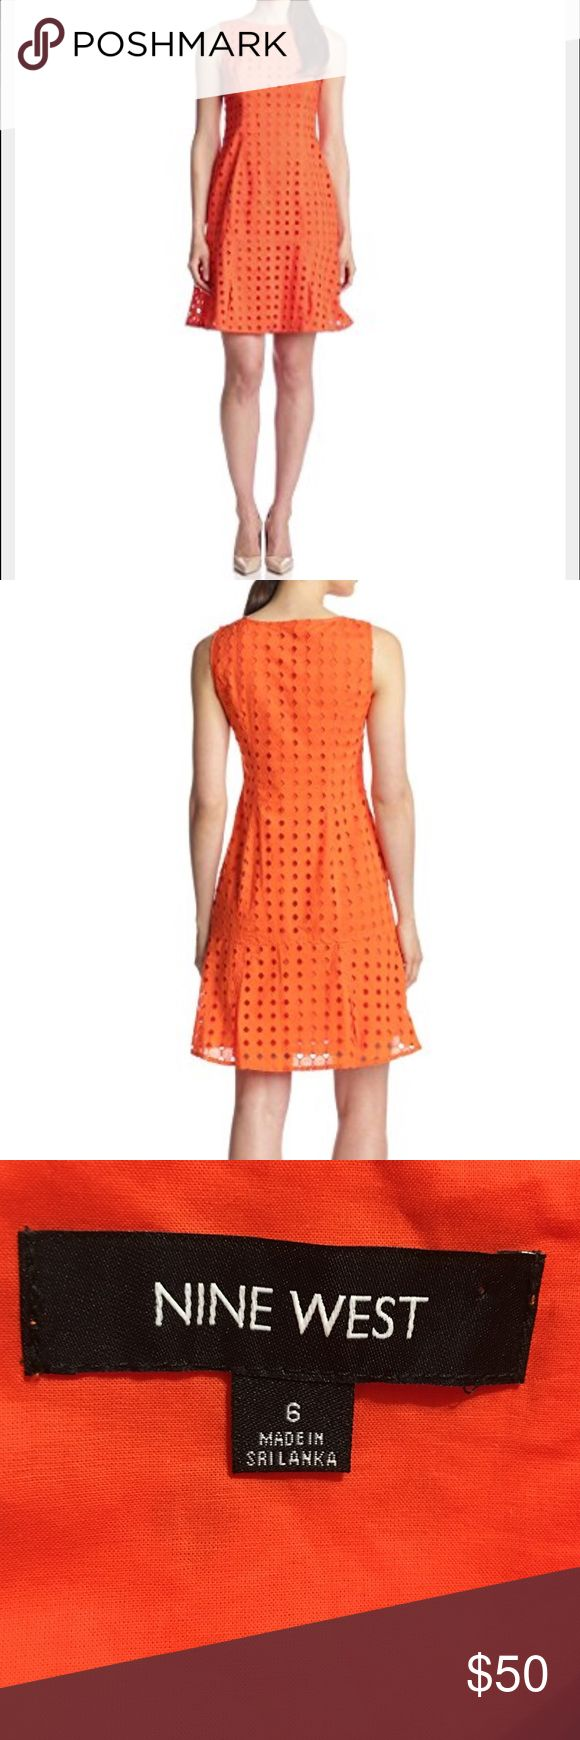 Nine West Orange Eyelet Shift Sleeveless Dress New With Tags Nine West Orange Eyelet Dress Size 6.  MSRP $98. Nine West Dresses Mini